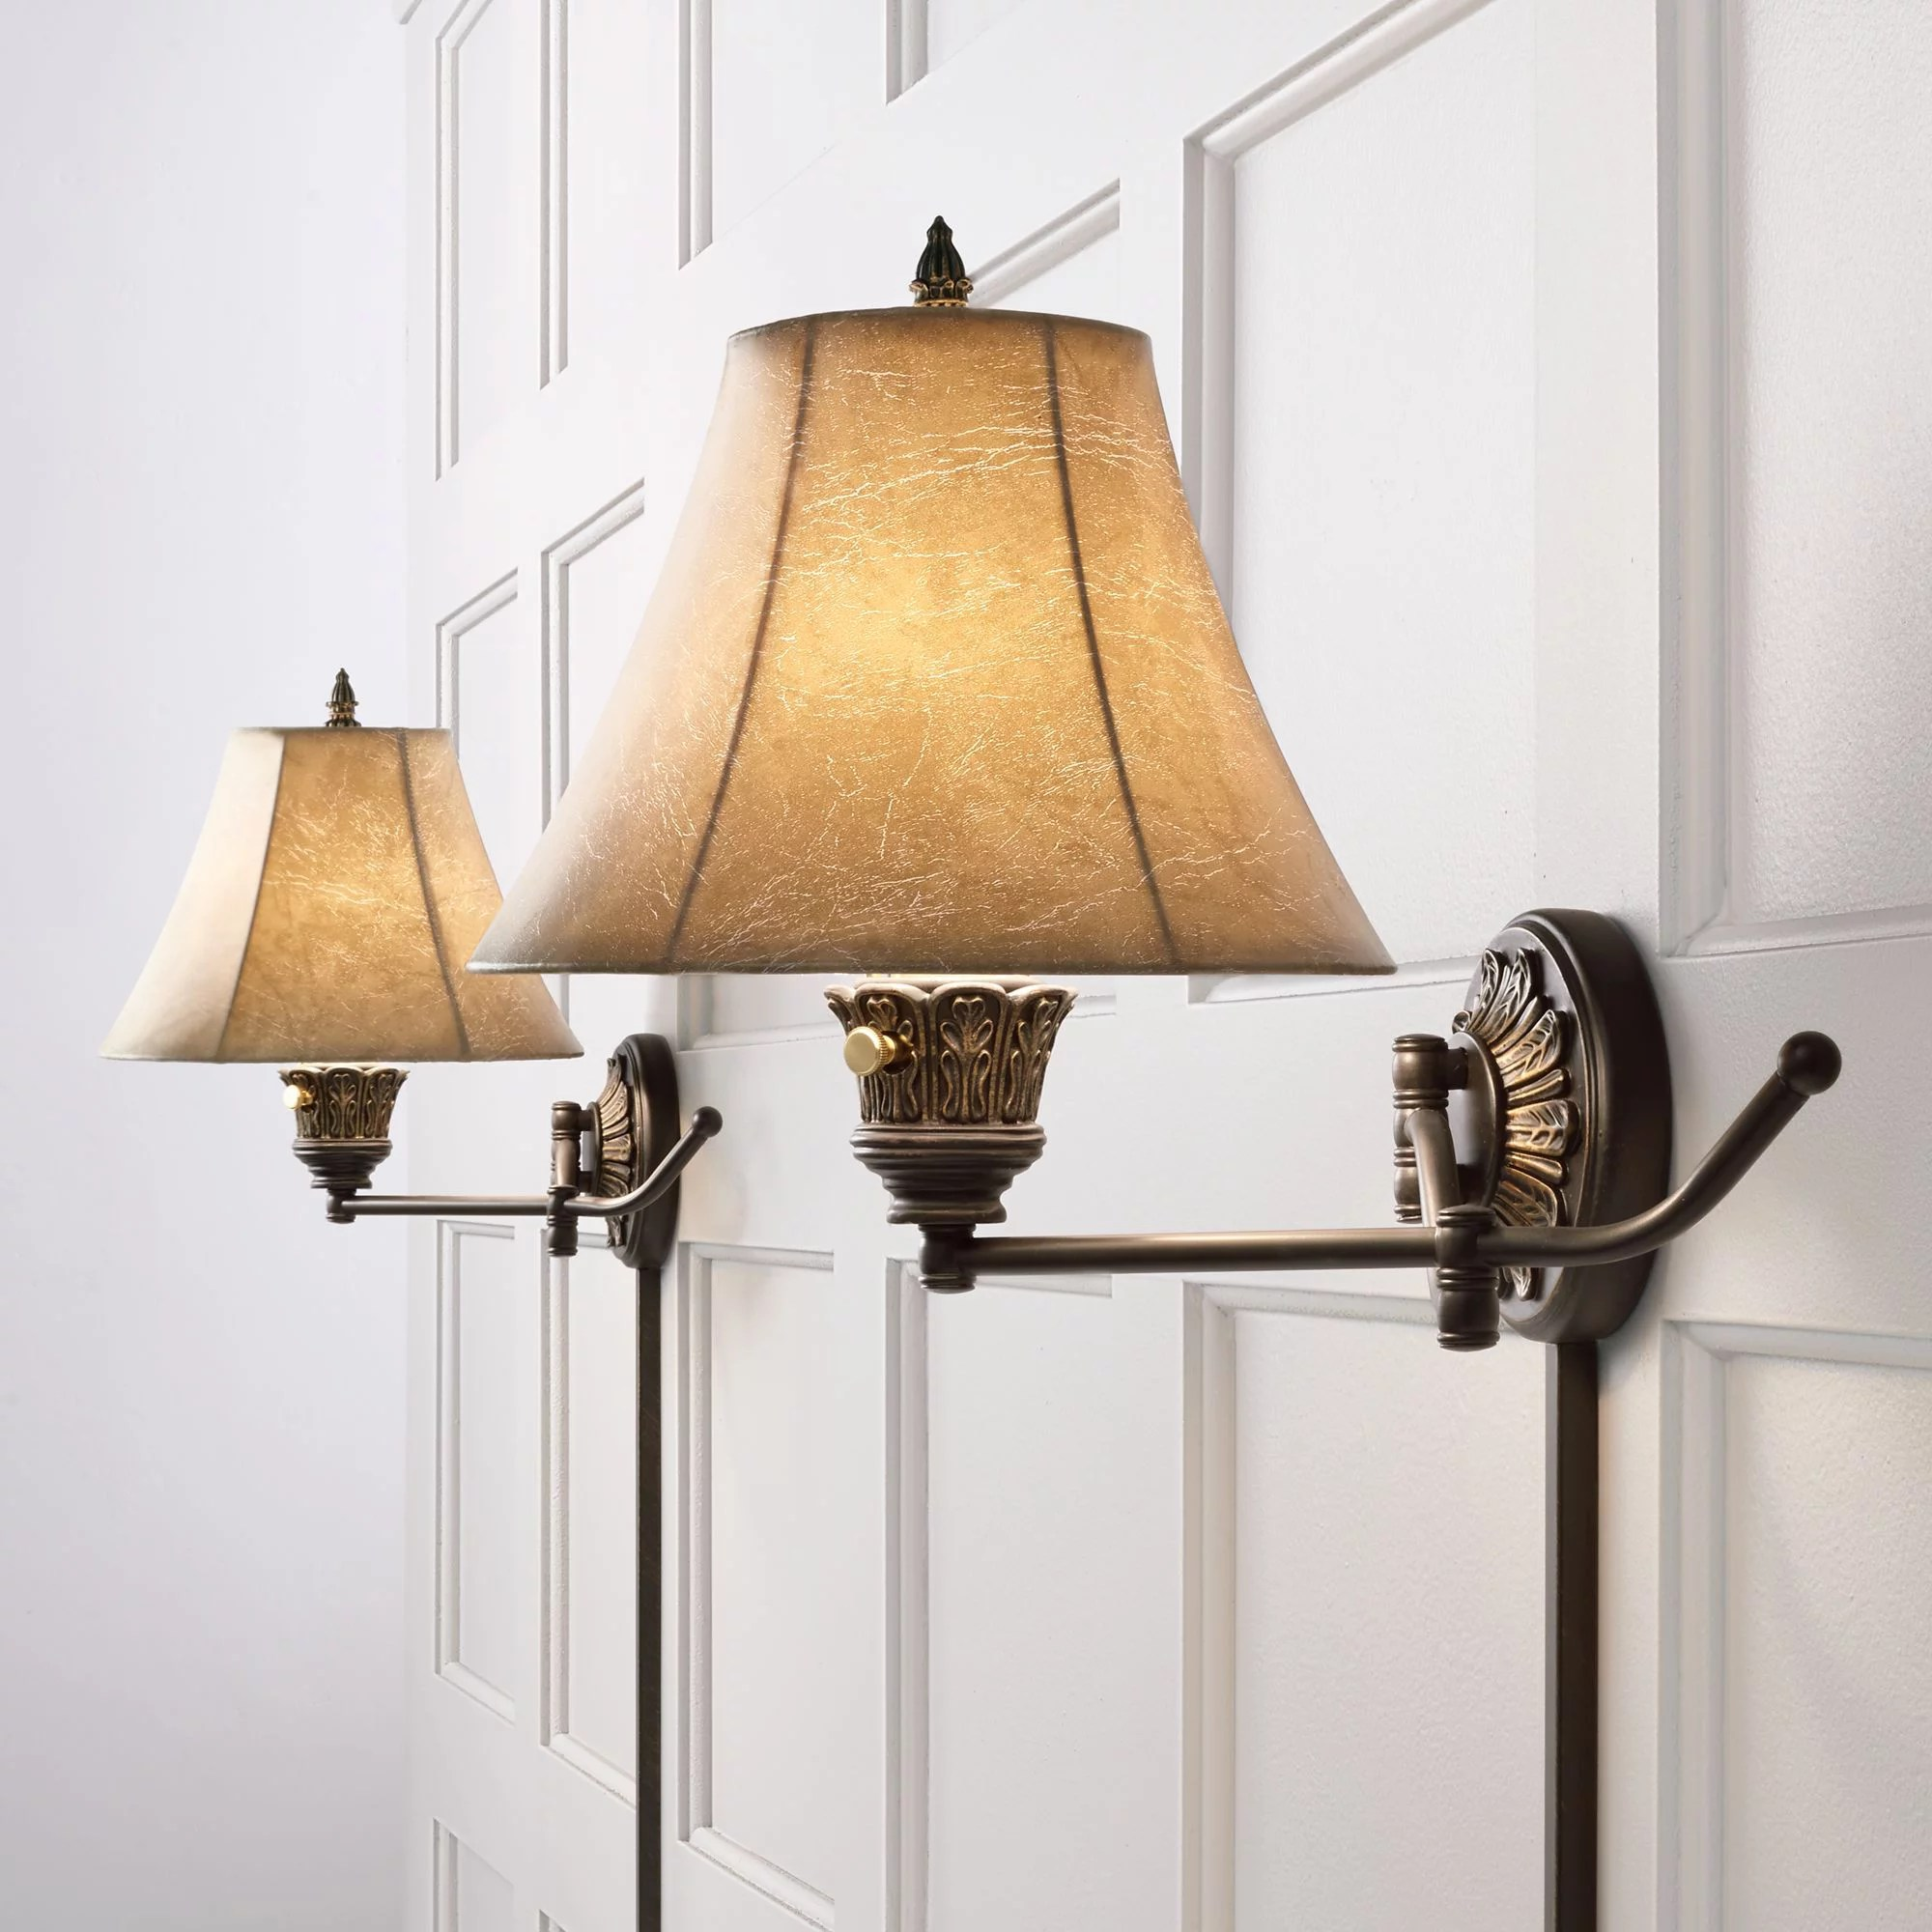 Barnes and Ivy Swing Arm Wall Lights Plug In Set of 2 ... on Plugin Wall Sconce Lights id=53618